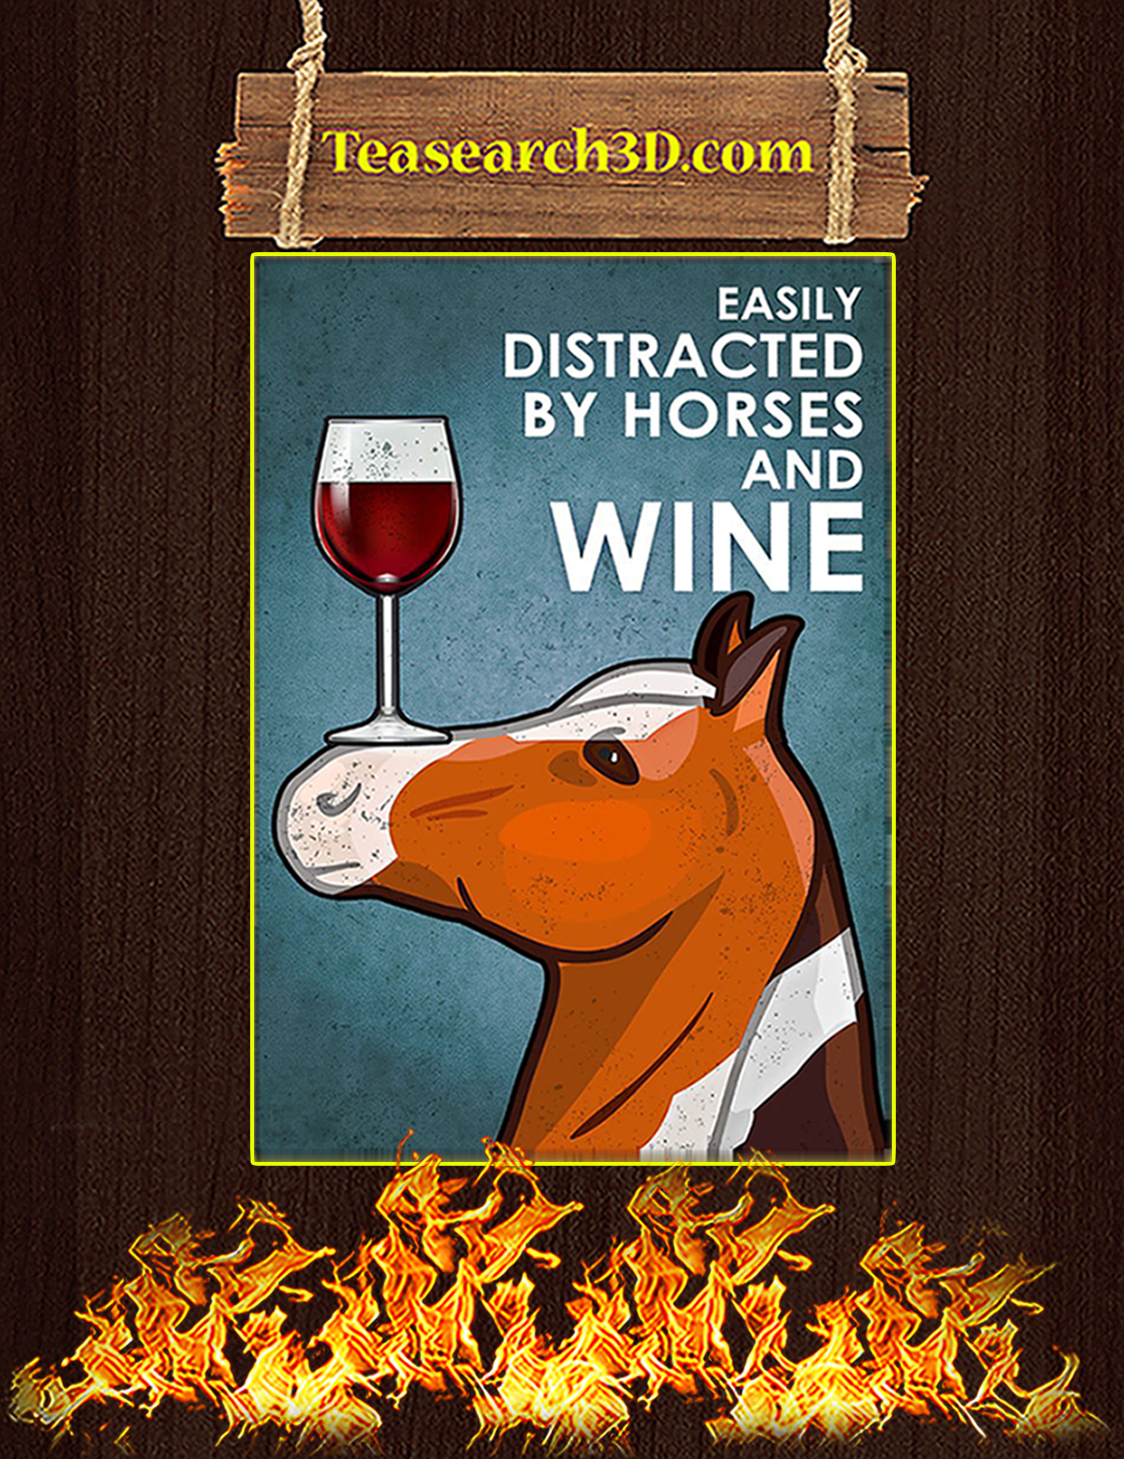 Easily distracted by horses and wine poster A3